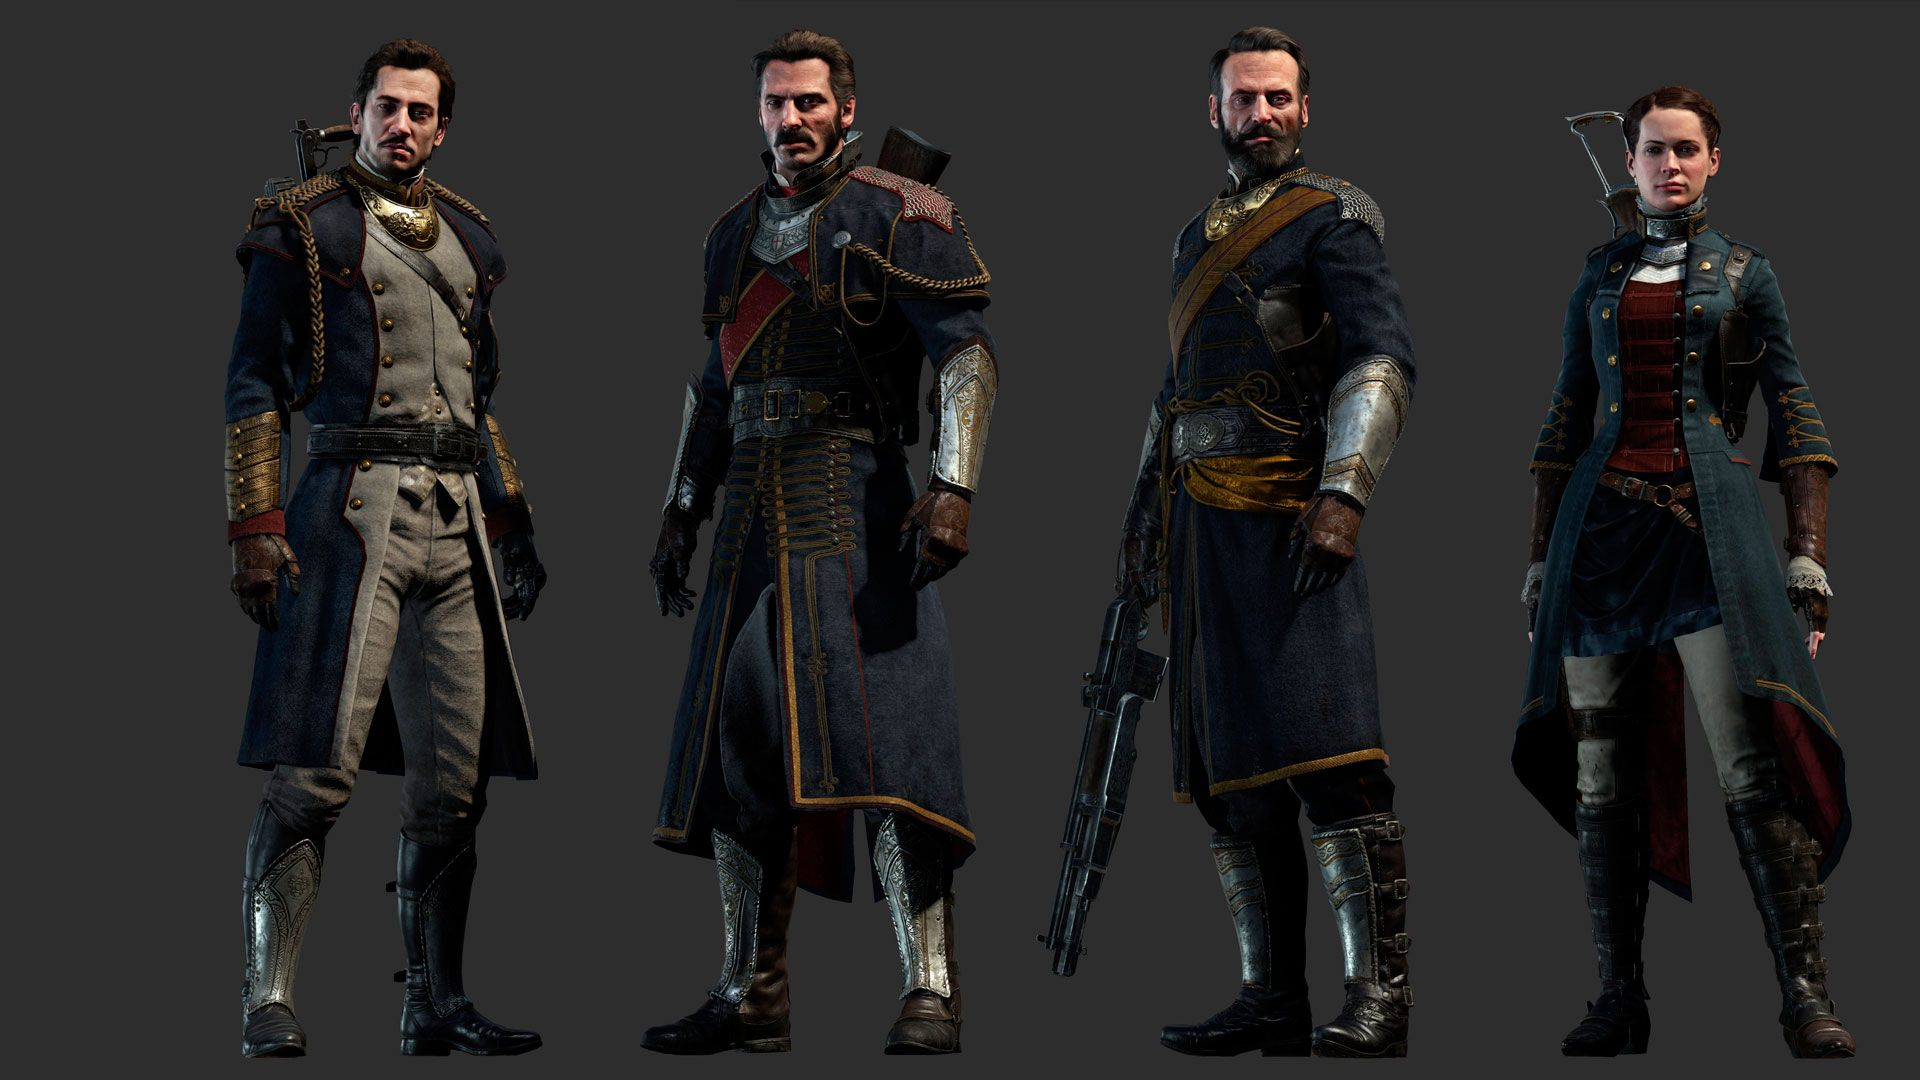 Marqués de Lafayette, Sir Galahad, Sebastian Malory  y Isabeau D'Argyll / The Order 1886 / PlayStation 4  #TheOrder1886 #shooter #Games #videogames #PlayStation4 #PS4 #ReadyAtDawn #Sony #SirGalahad #SebastianMalory #IsabeauDArgyll #MarquesdeLafayette #Lafayette